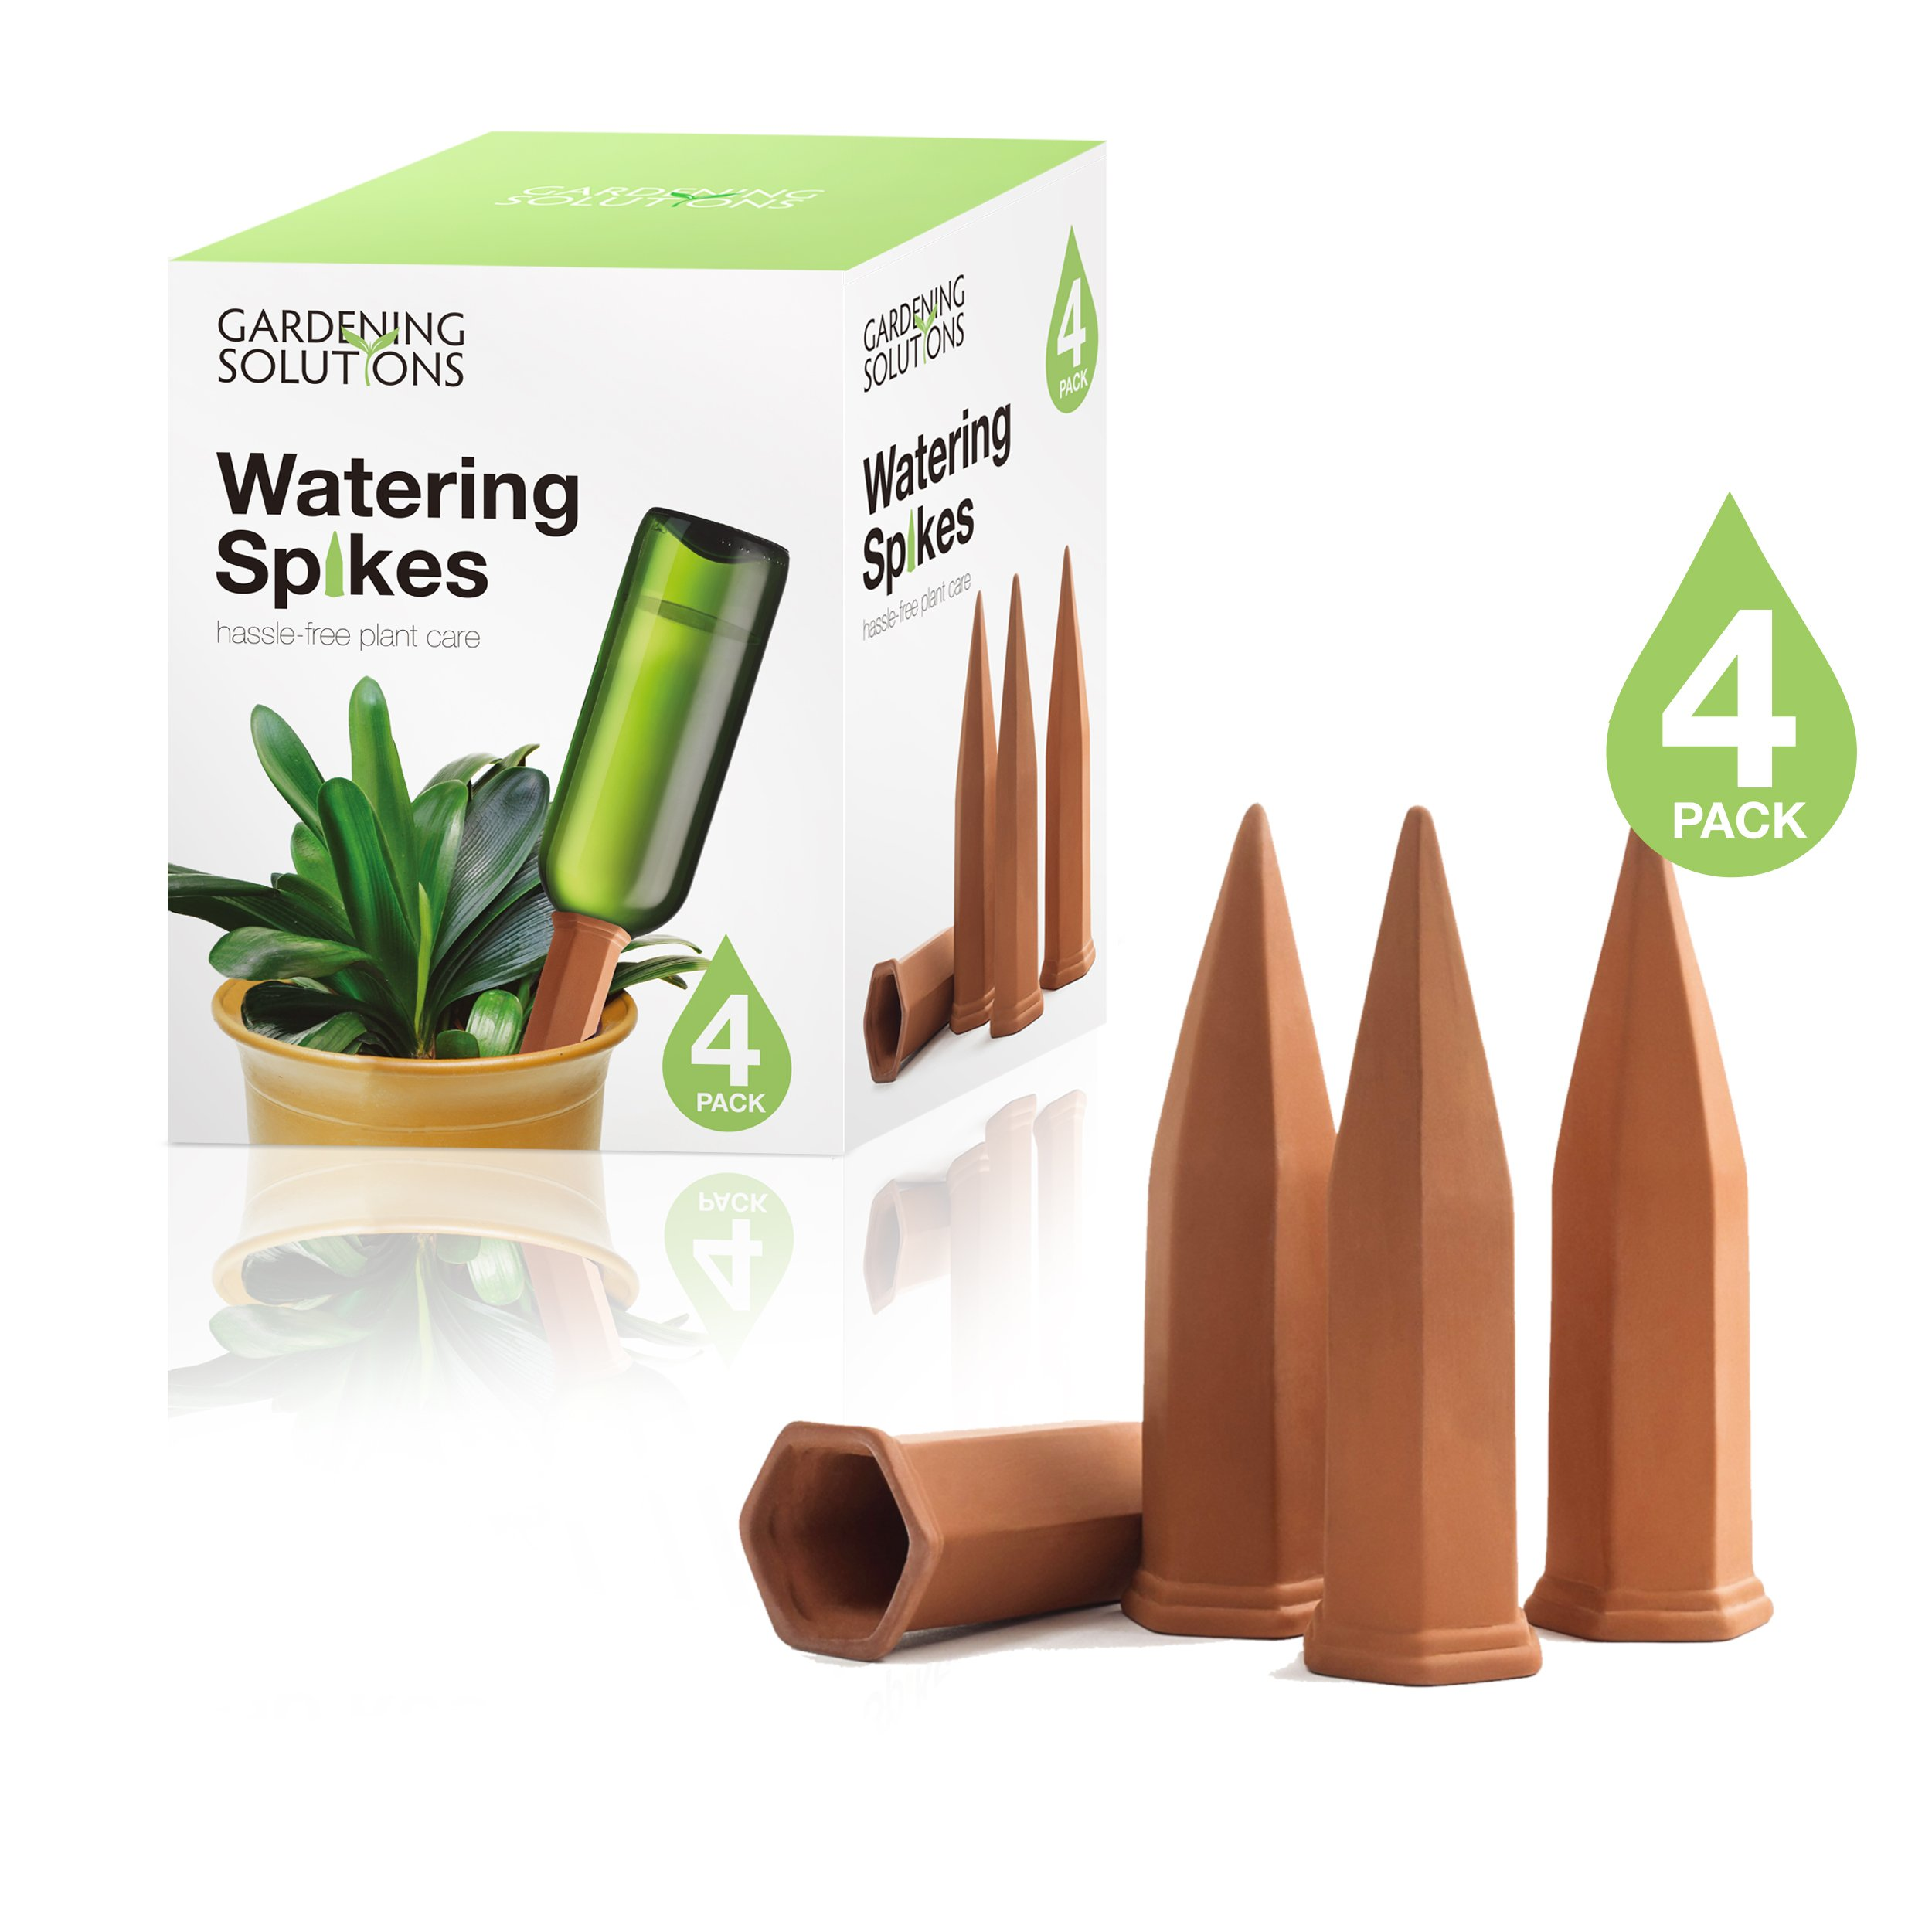 Terracotta Watering Spikes by Gardening Solutions - Water Plants with Automatic Bottle Irrigation System - Set of 4 Stakes by Gardening Solutions